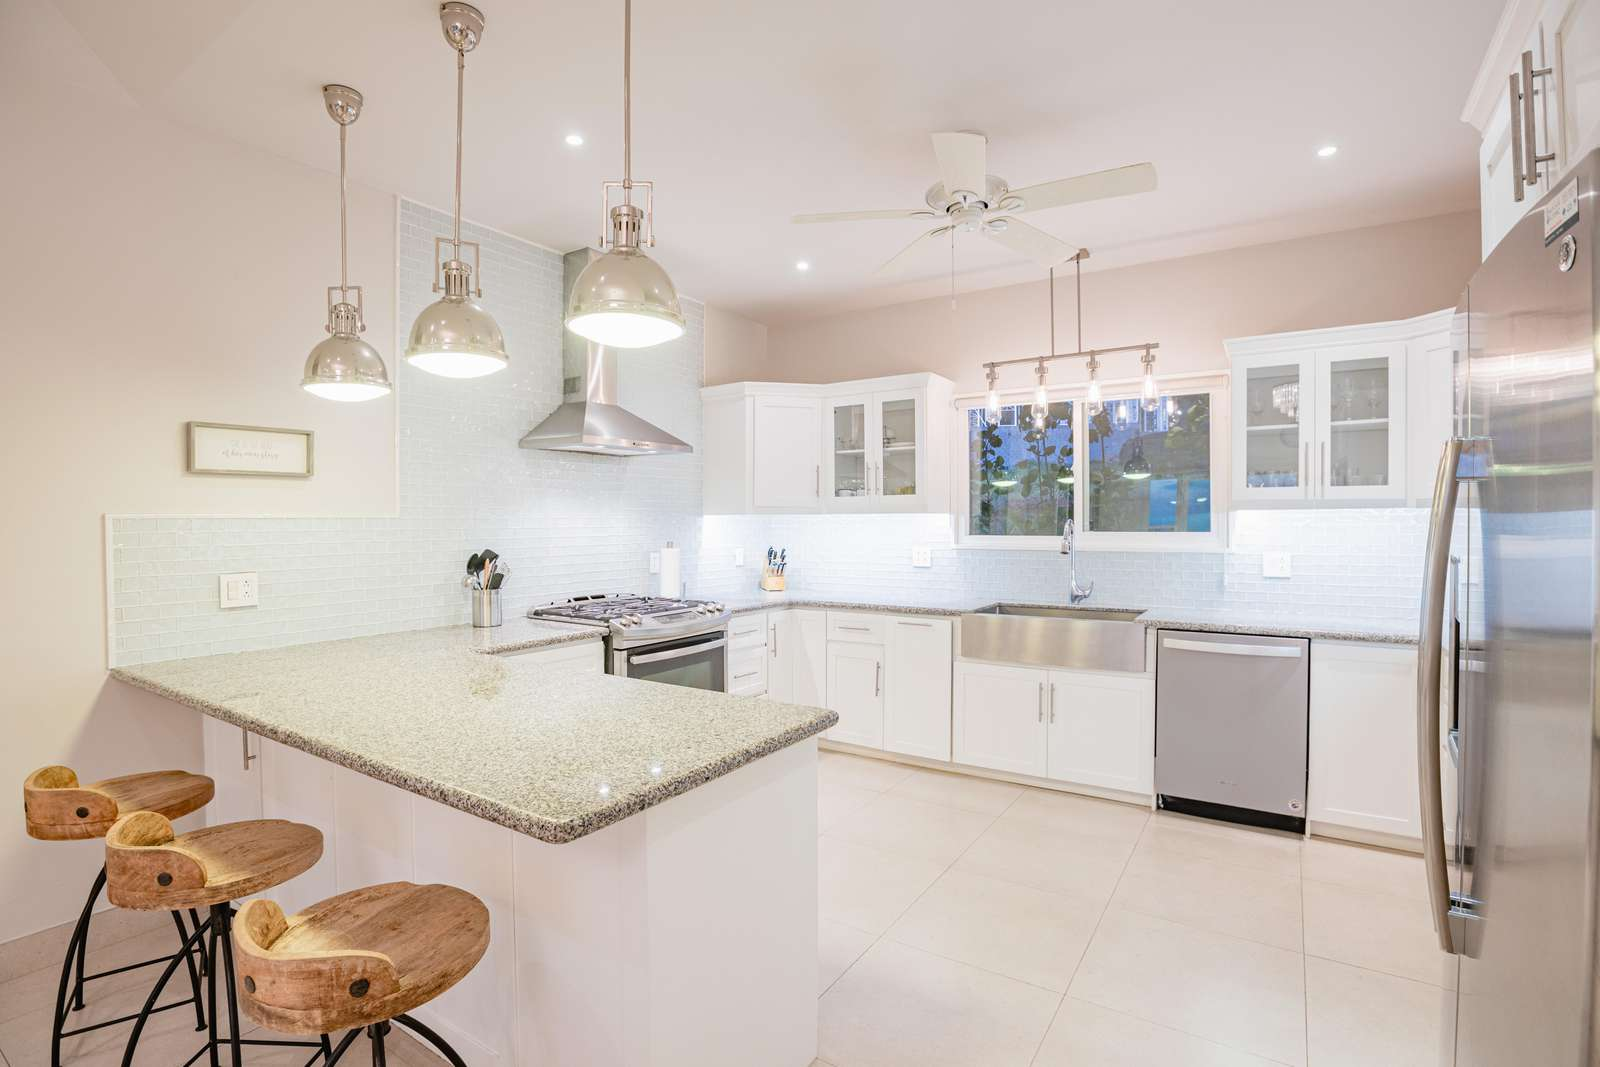 Fully stocked gourmet kitchen, with breakfast bar, granite countertops and stainless steel appliances